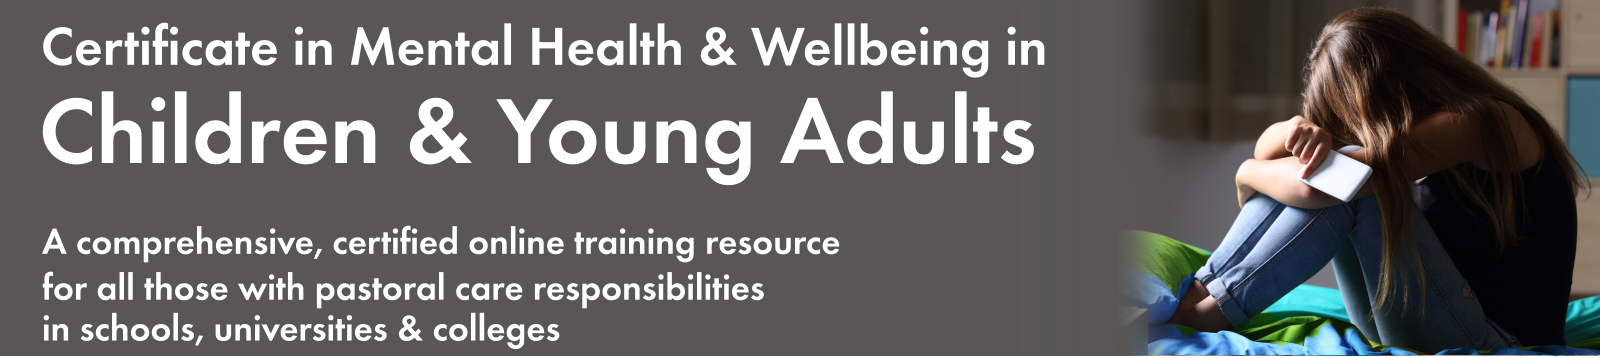 Mental Health & Wellbeing Banner